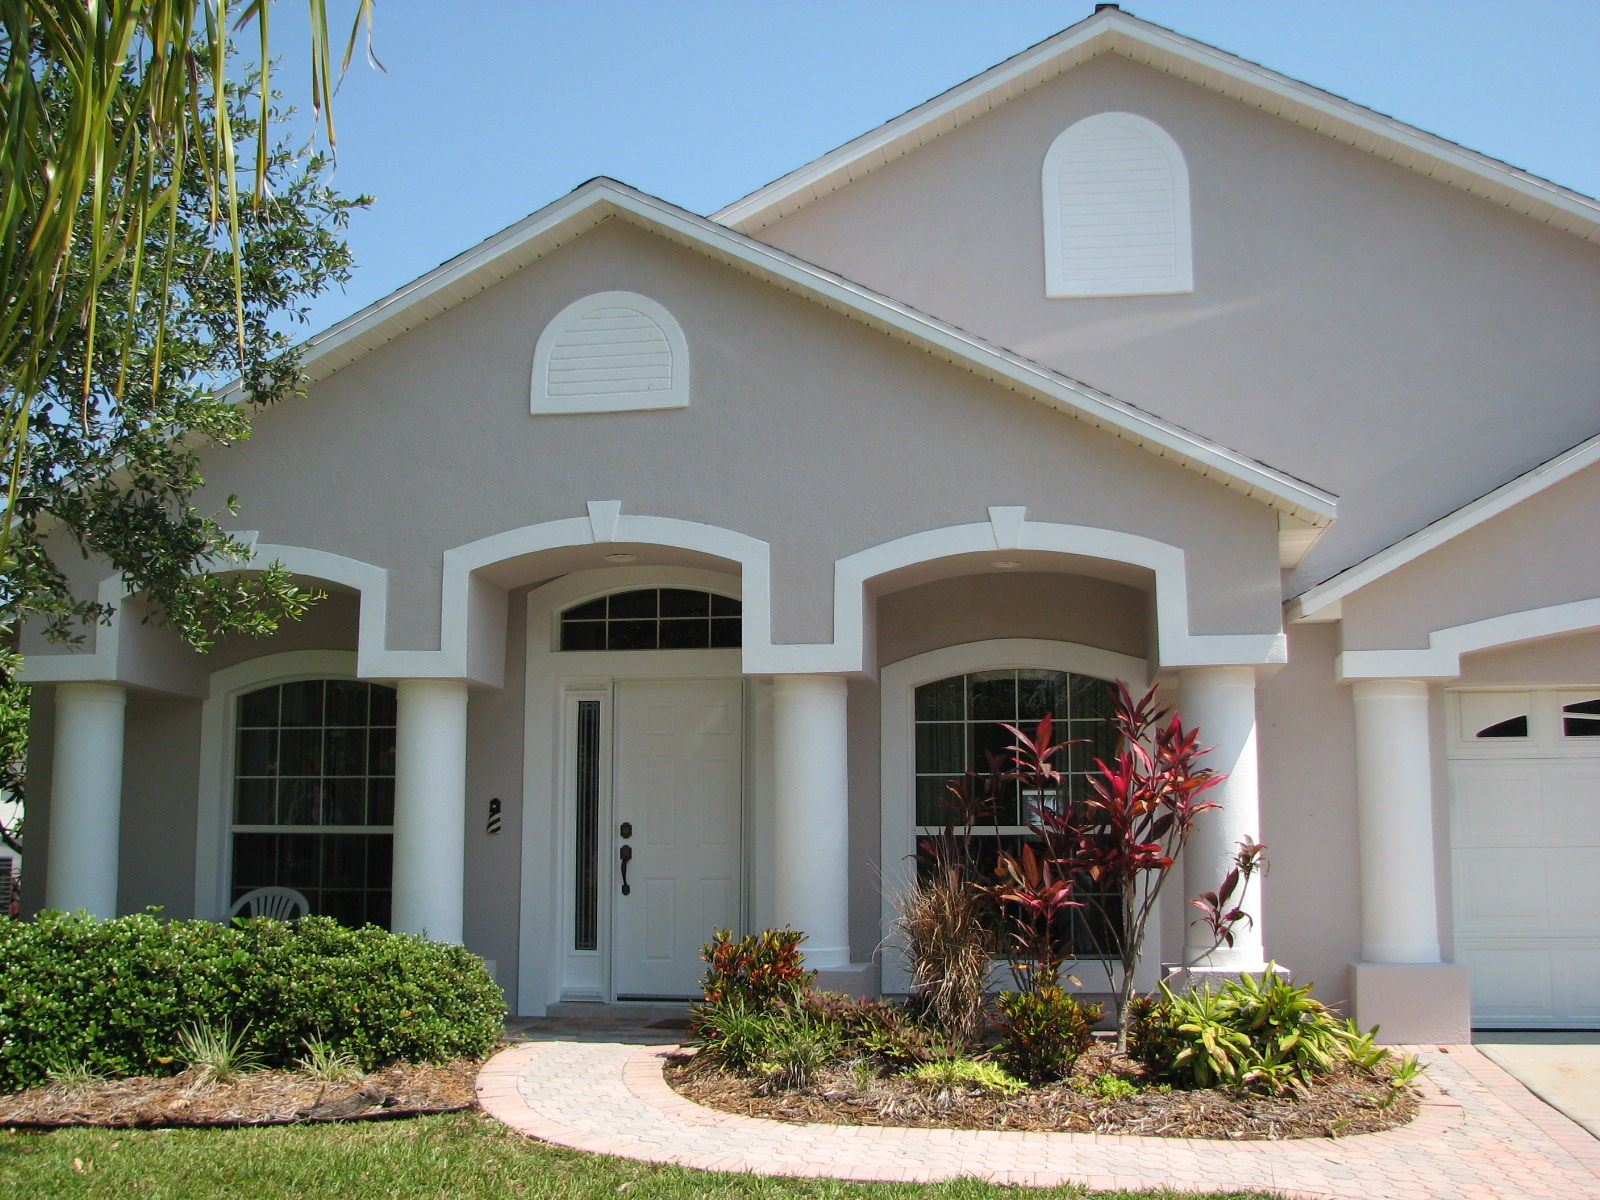 Stucco repair melbourne fl stucco cracks bulging stucco for Florida house paint colors